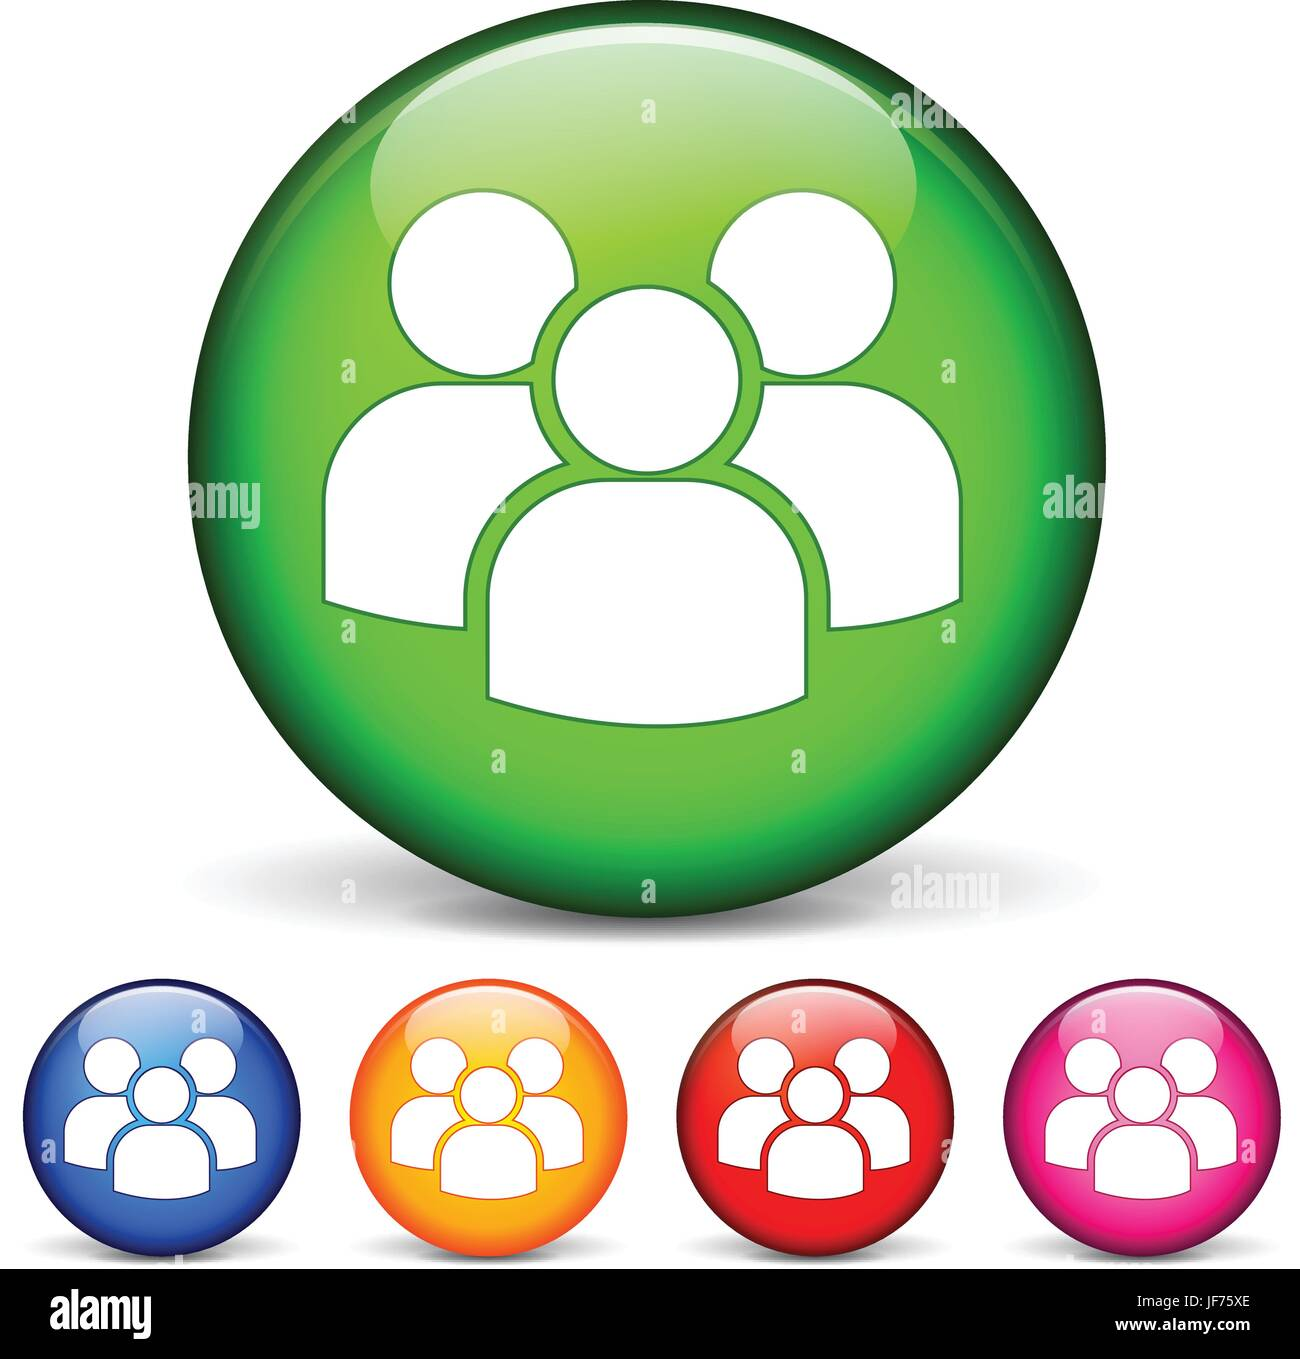 humans, human beings, people, folk, persons, human, human being, button, Stock Vector